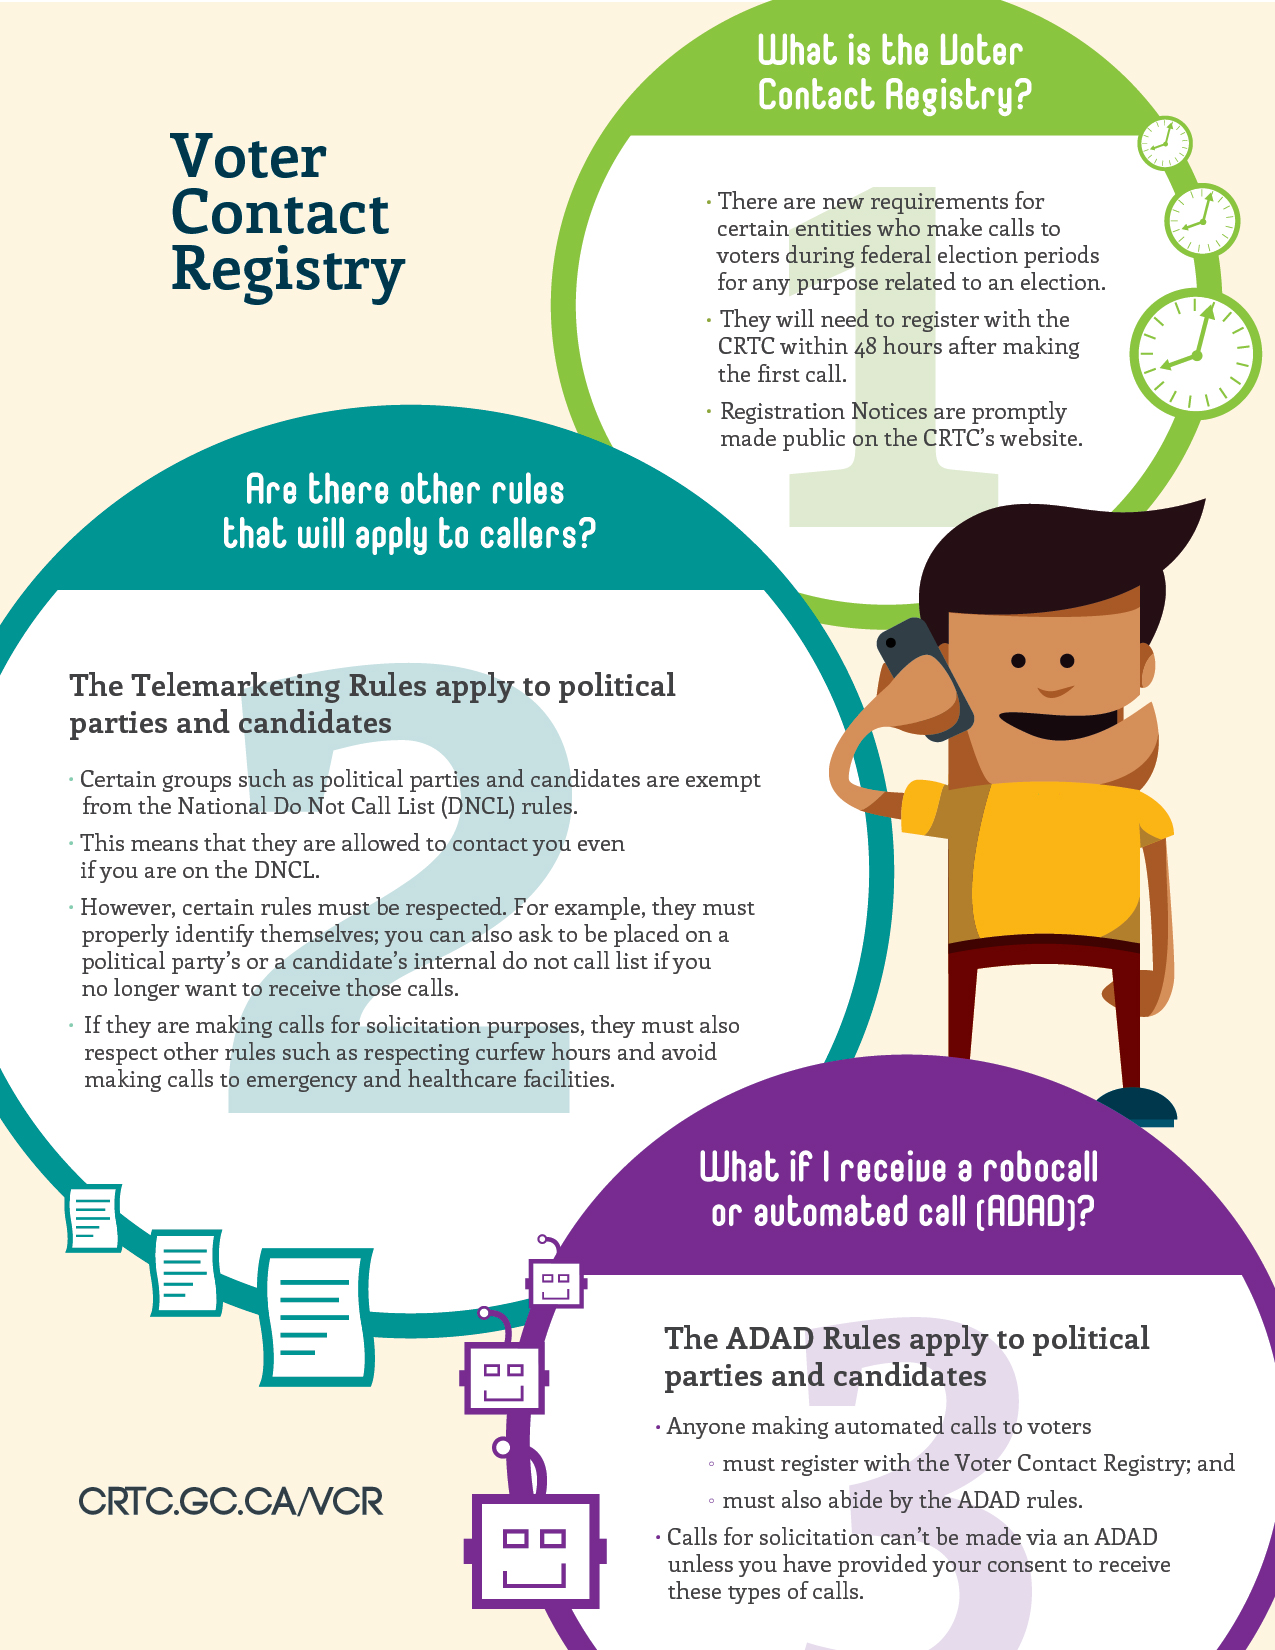 Infographic of the requirements of the Voter Contact Registry and the Telemarketing Rules that apply to political parties and candidates.